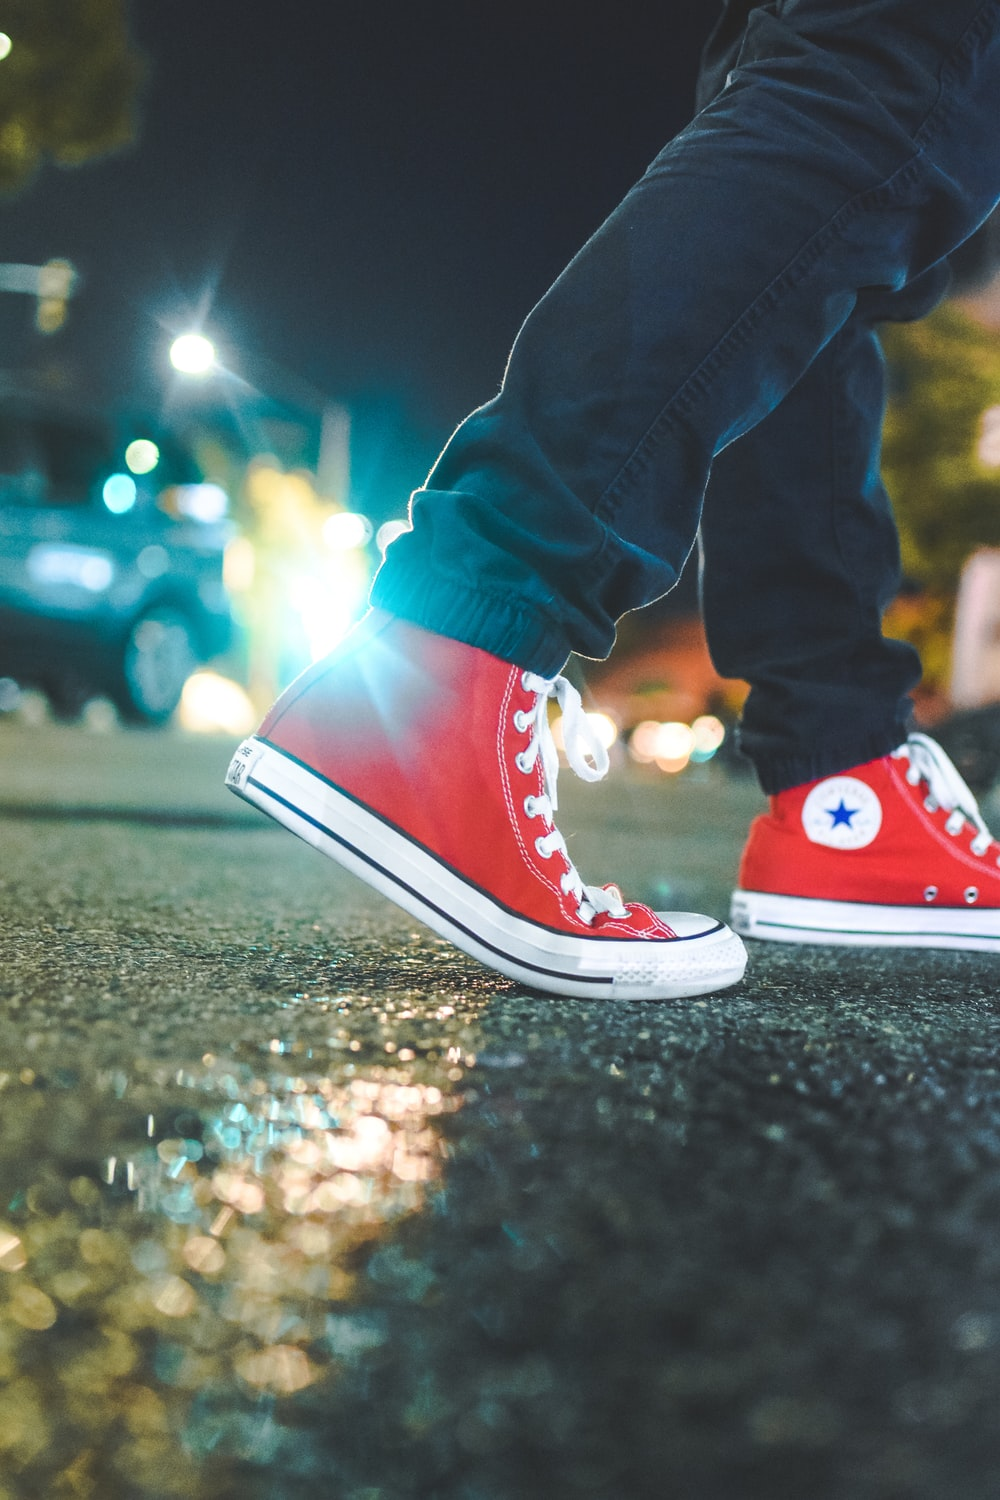 3cd040377 worm's eye view photo of person wearing pair of red Converse All Star  sneakers